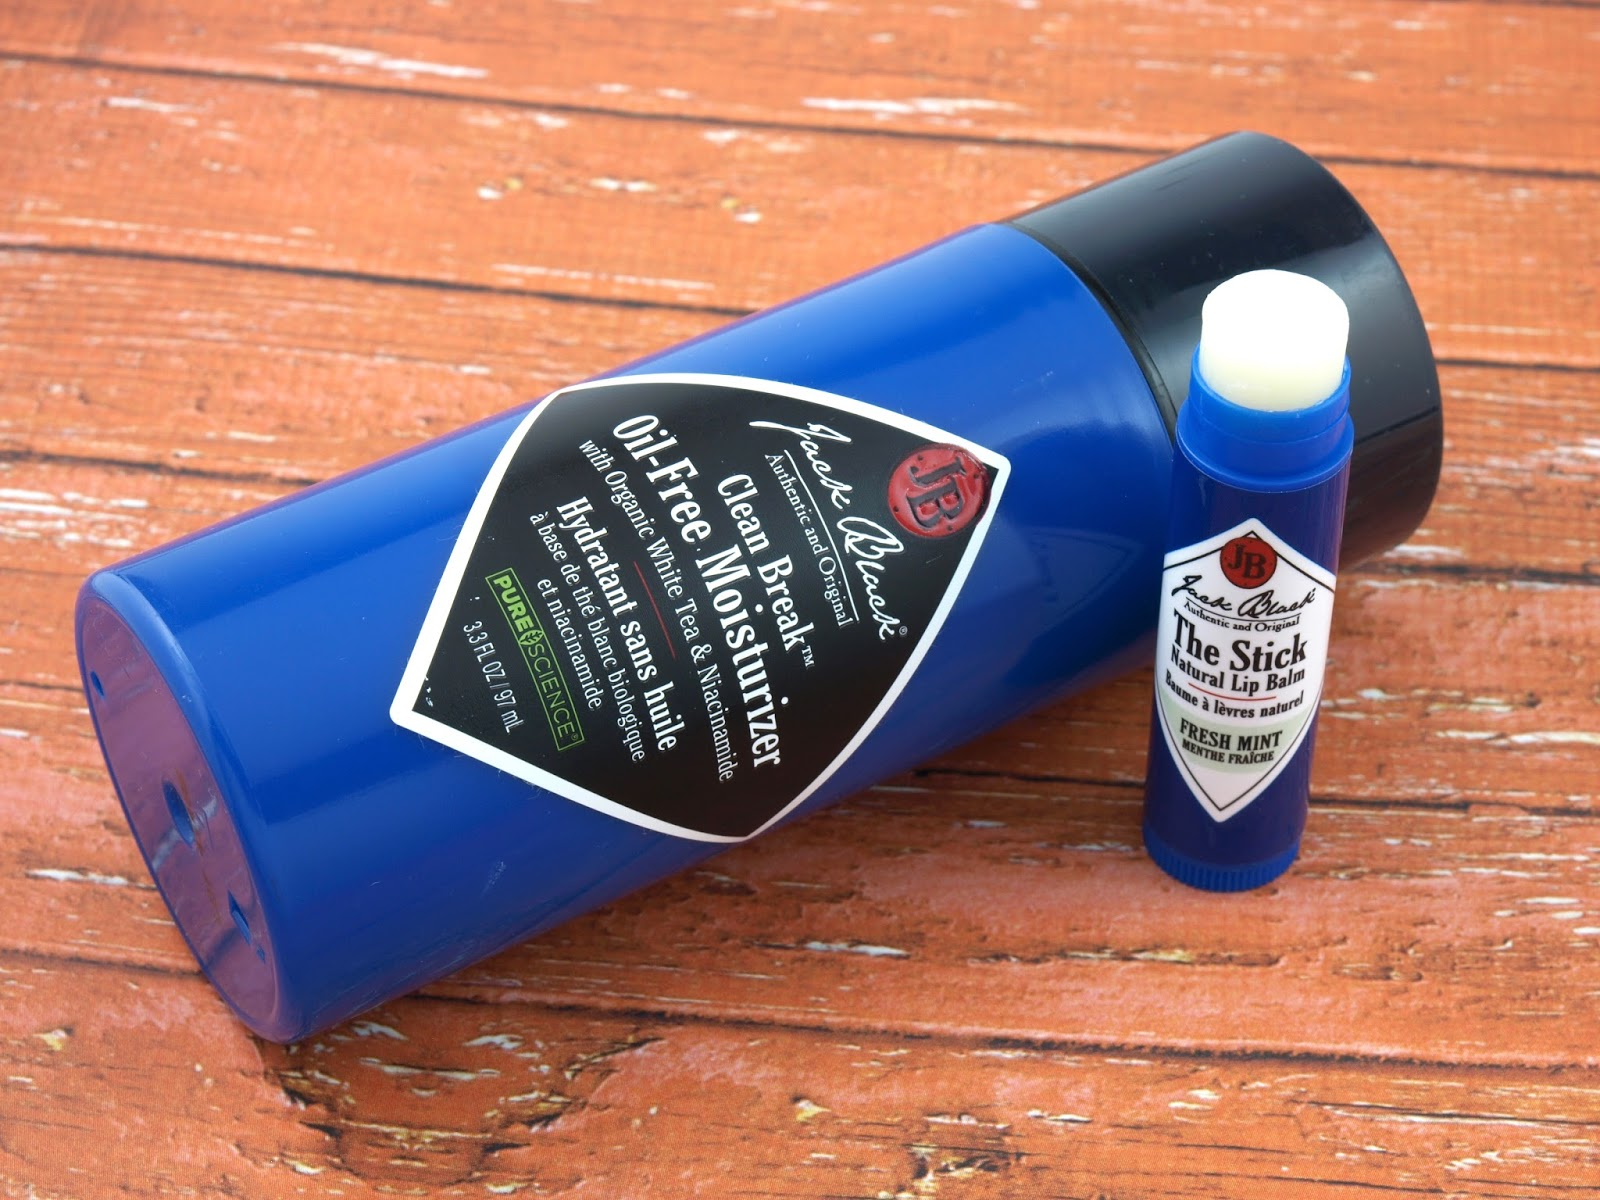 Jack Black Clean Break Oil-Free Moisturizer & The Stick Natural Lip Balm Review